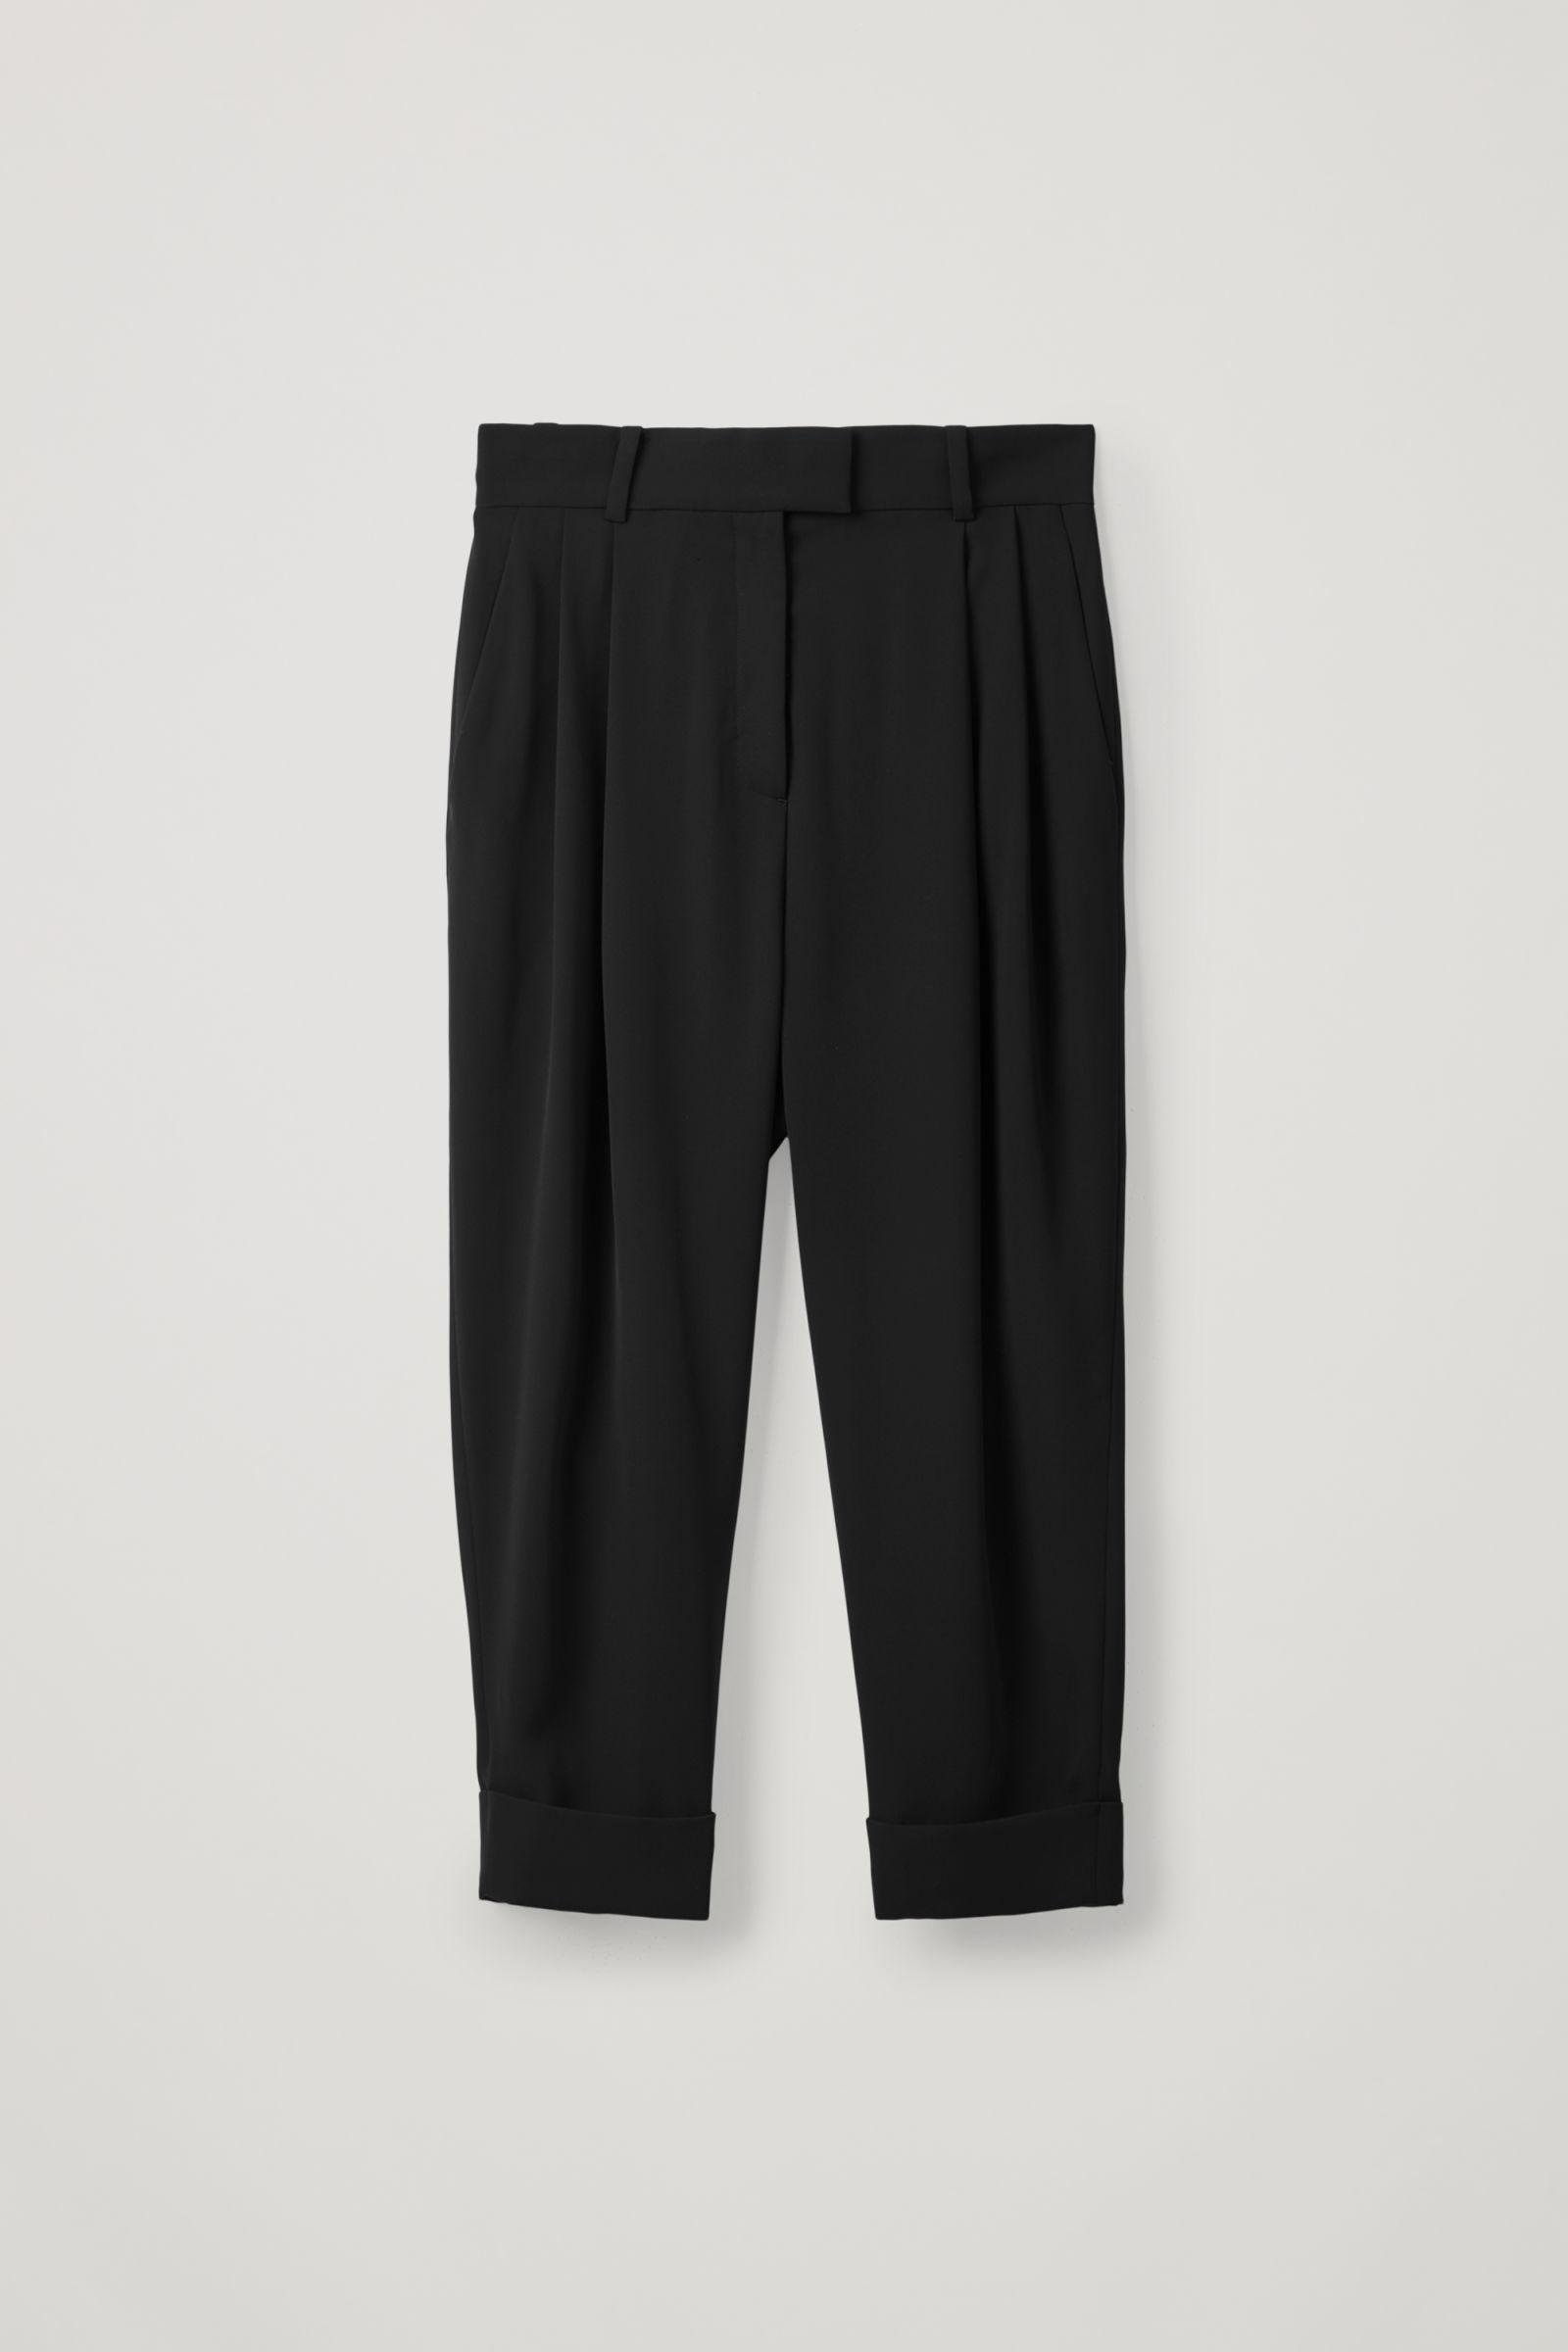 DROPPED CROTCH PANTS WITH PLEATS